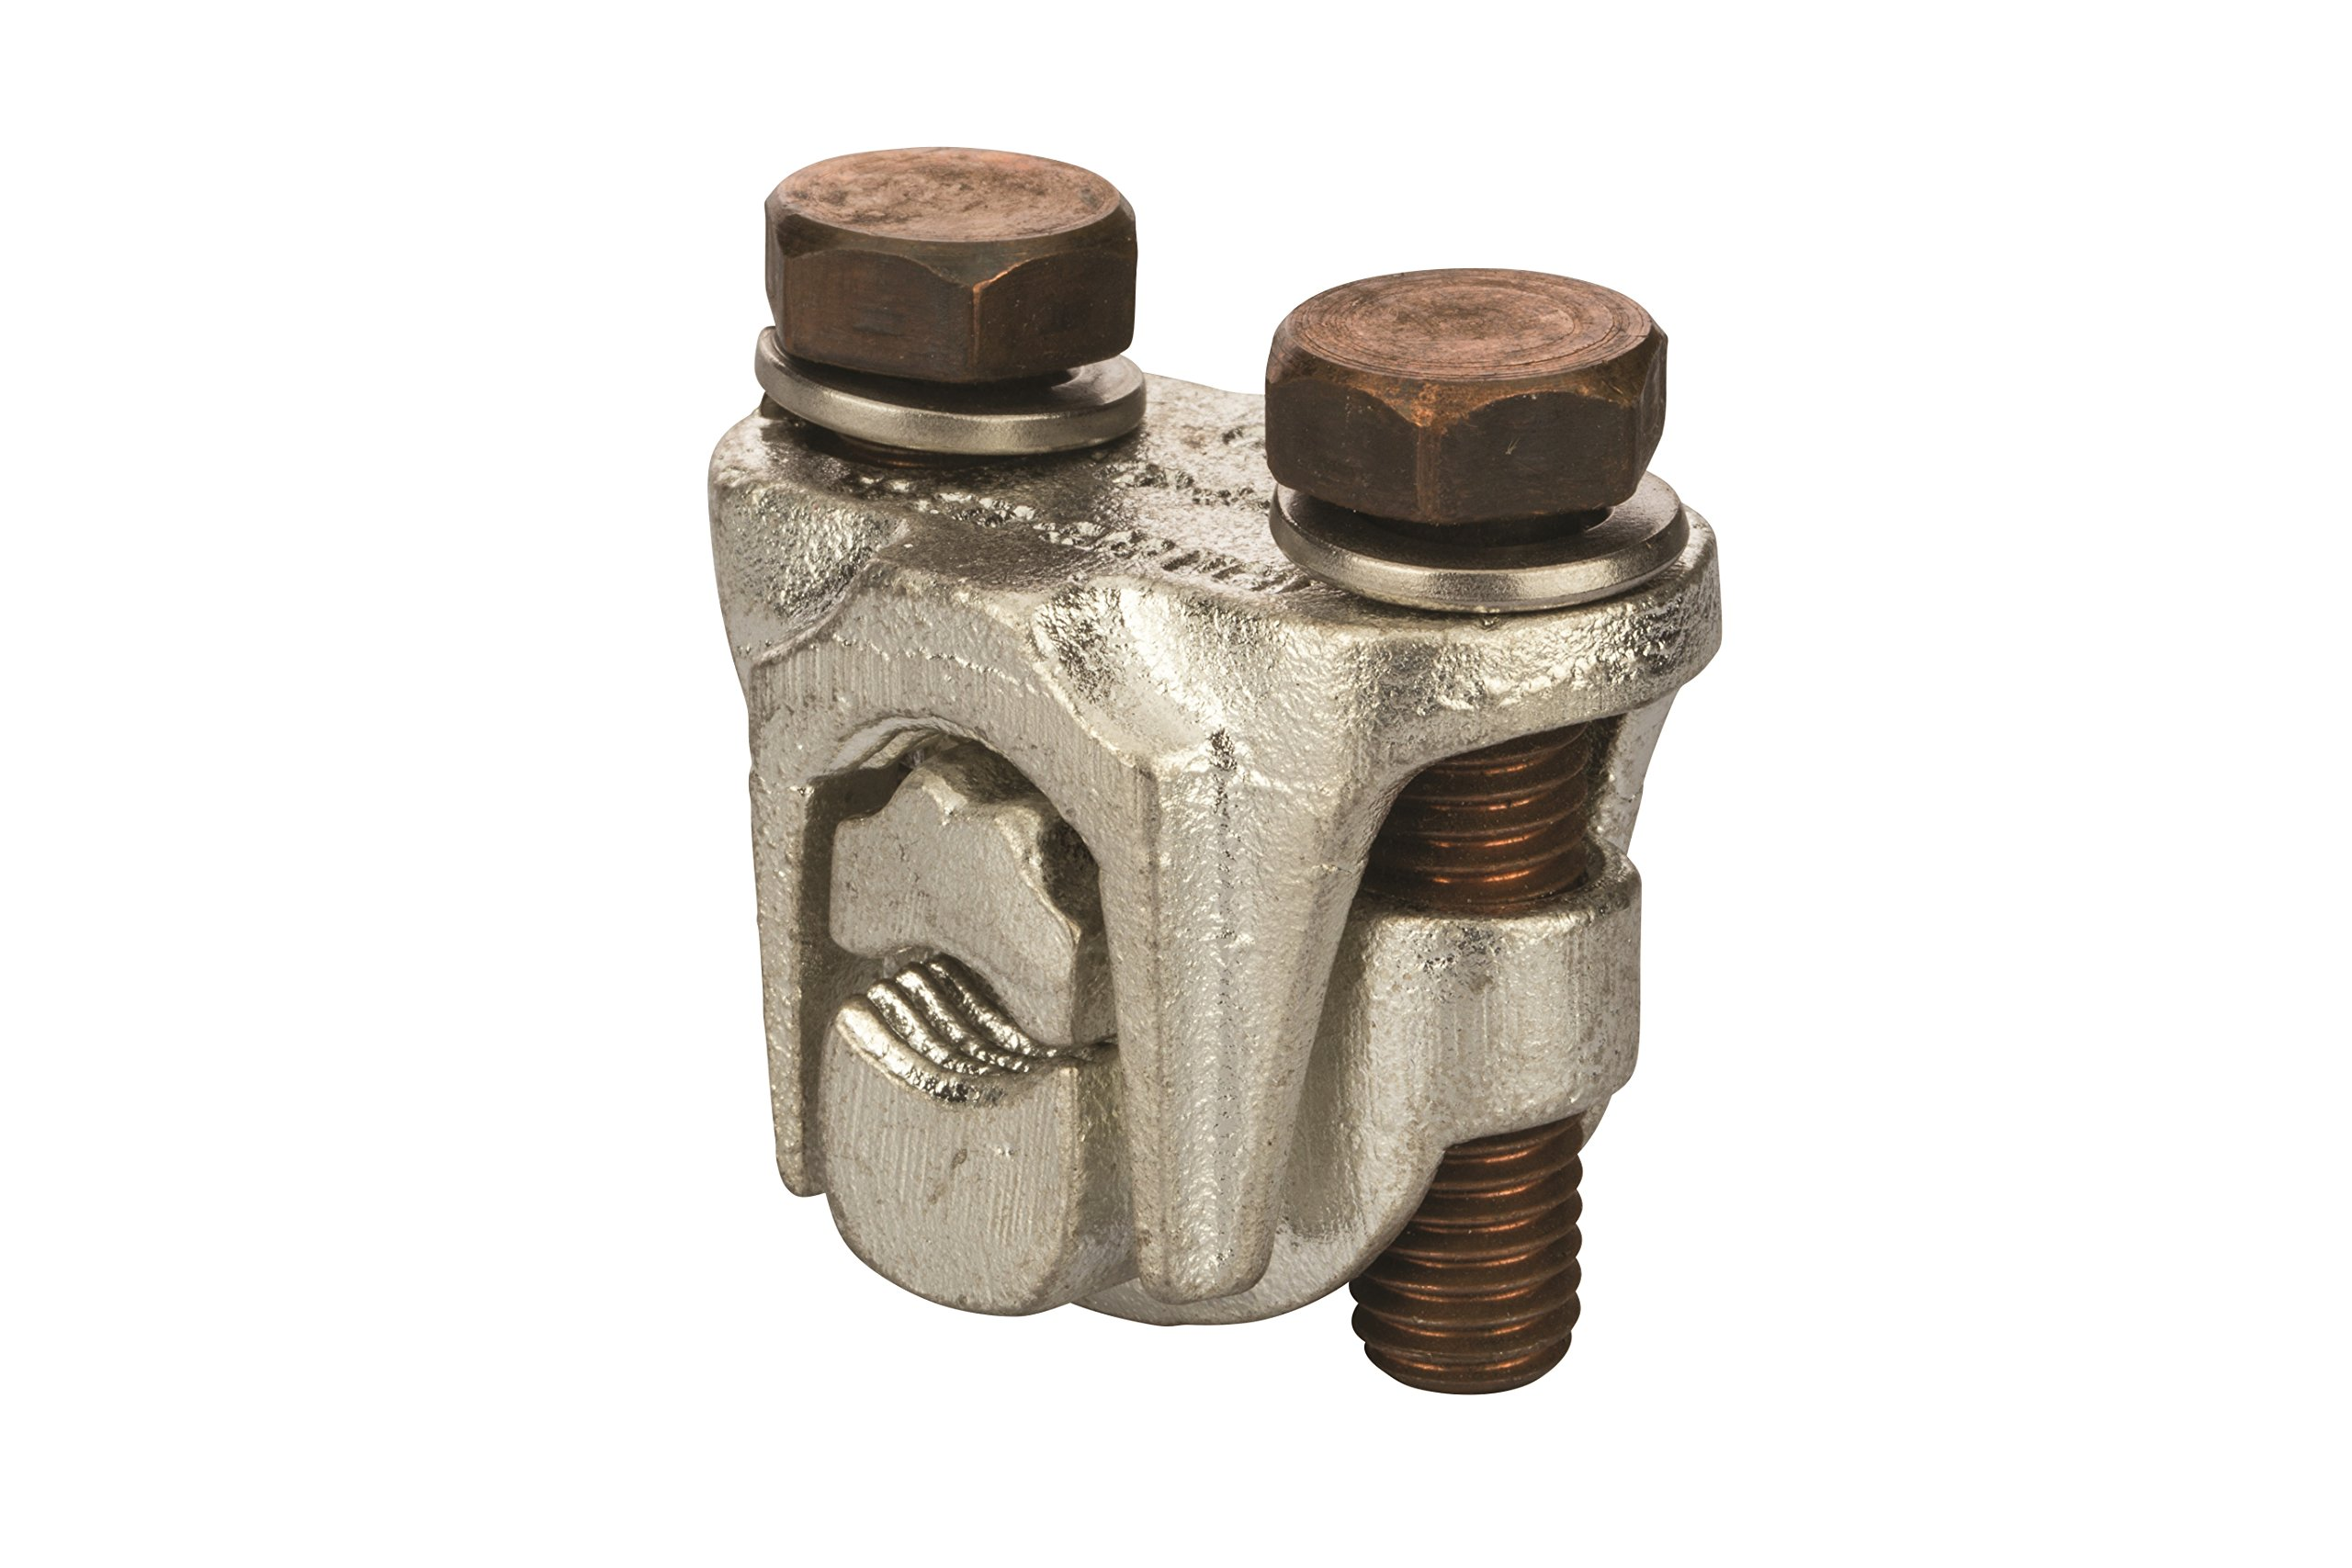 Two-Bolt Bronze Plated Tap Connector 500 MCM - 350 MCM- 1 Count by NSI